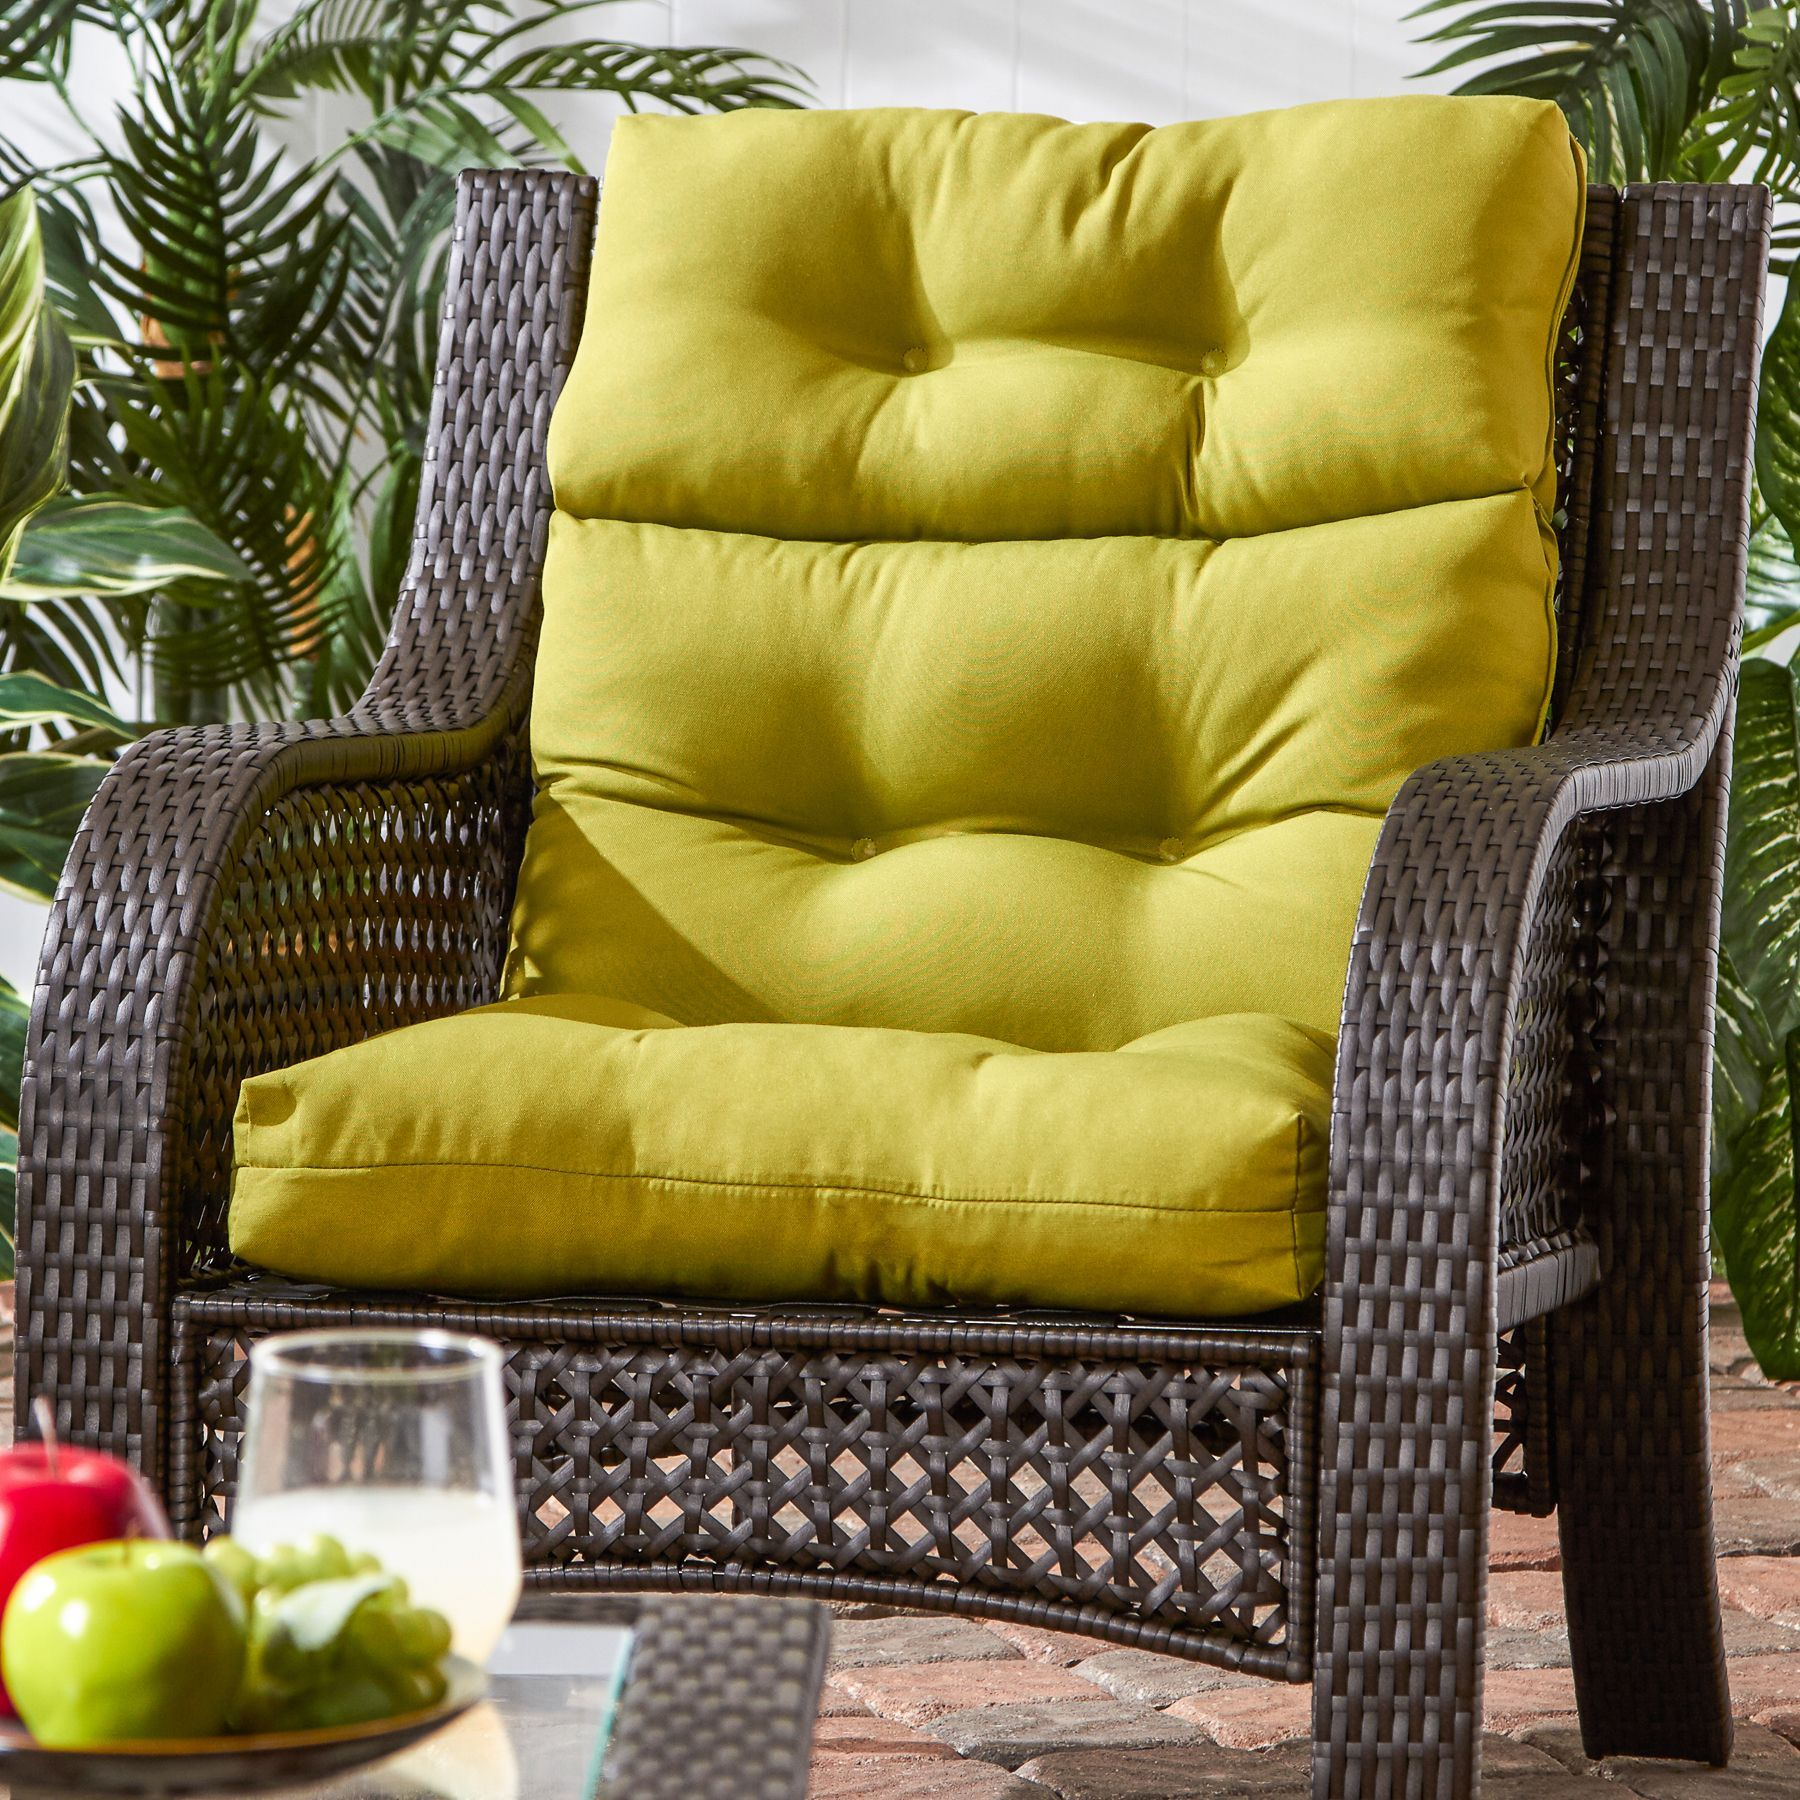 44x22 inch 3 section outdoor kiwi high back chair cushion lime